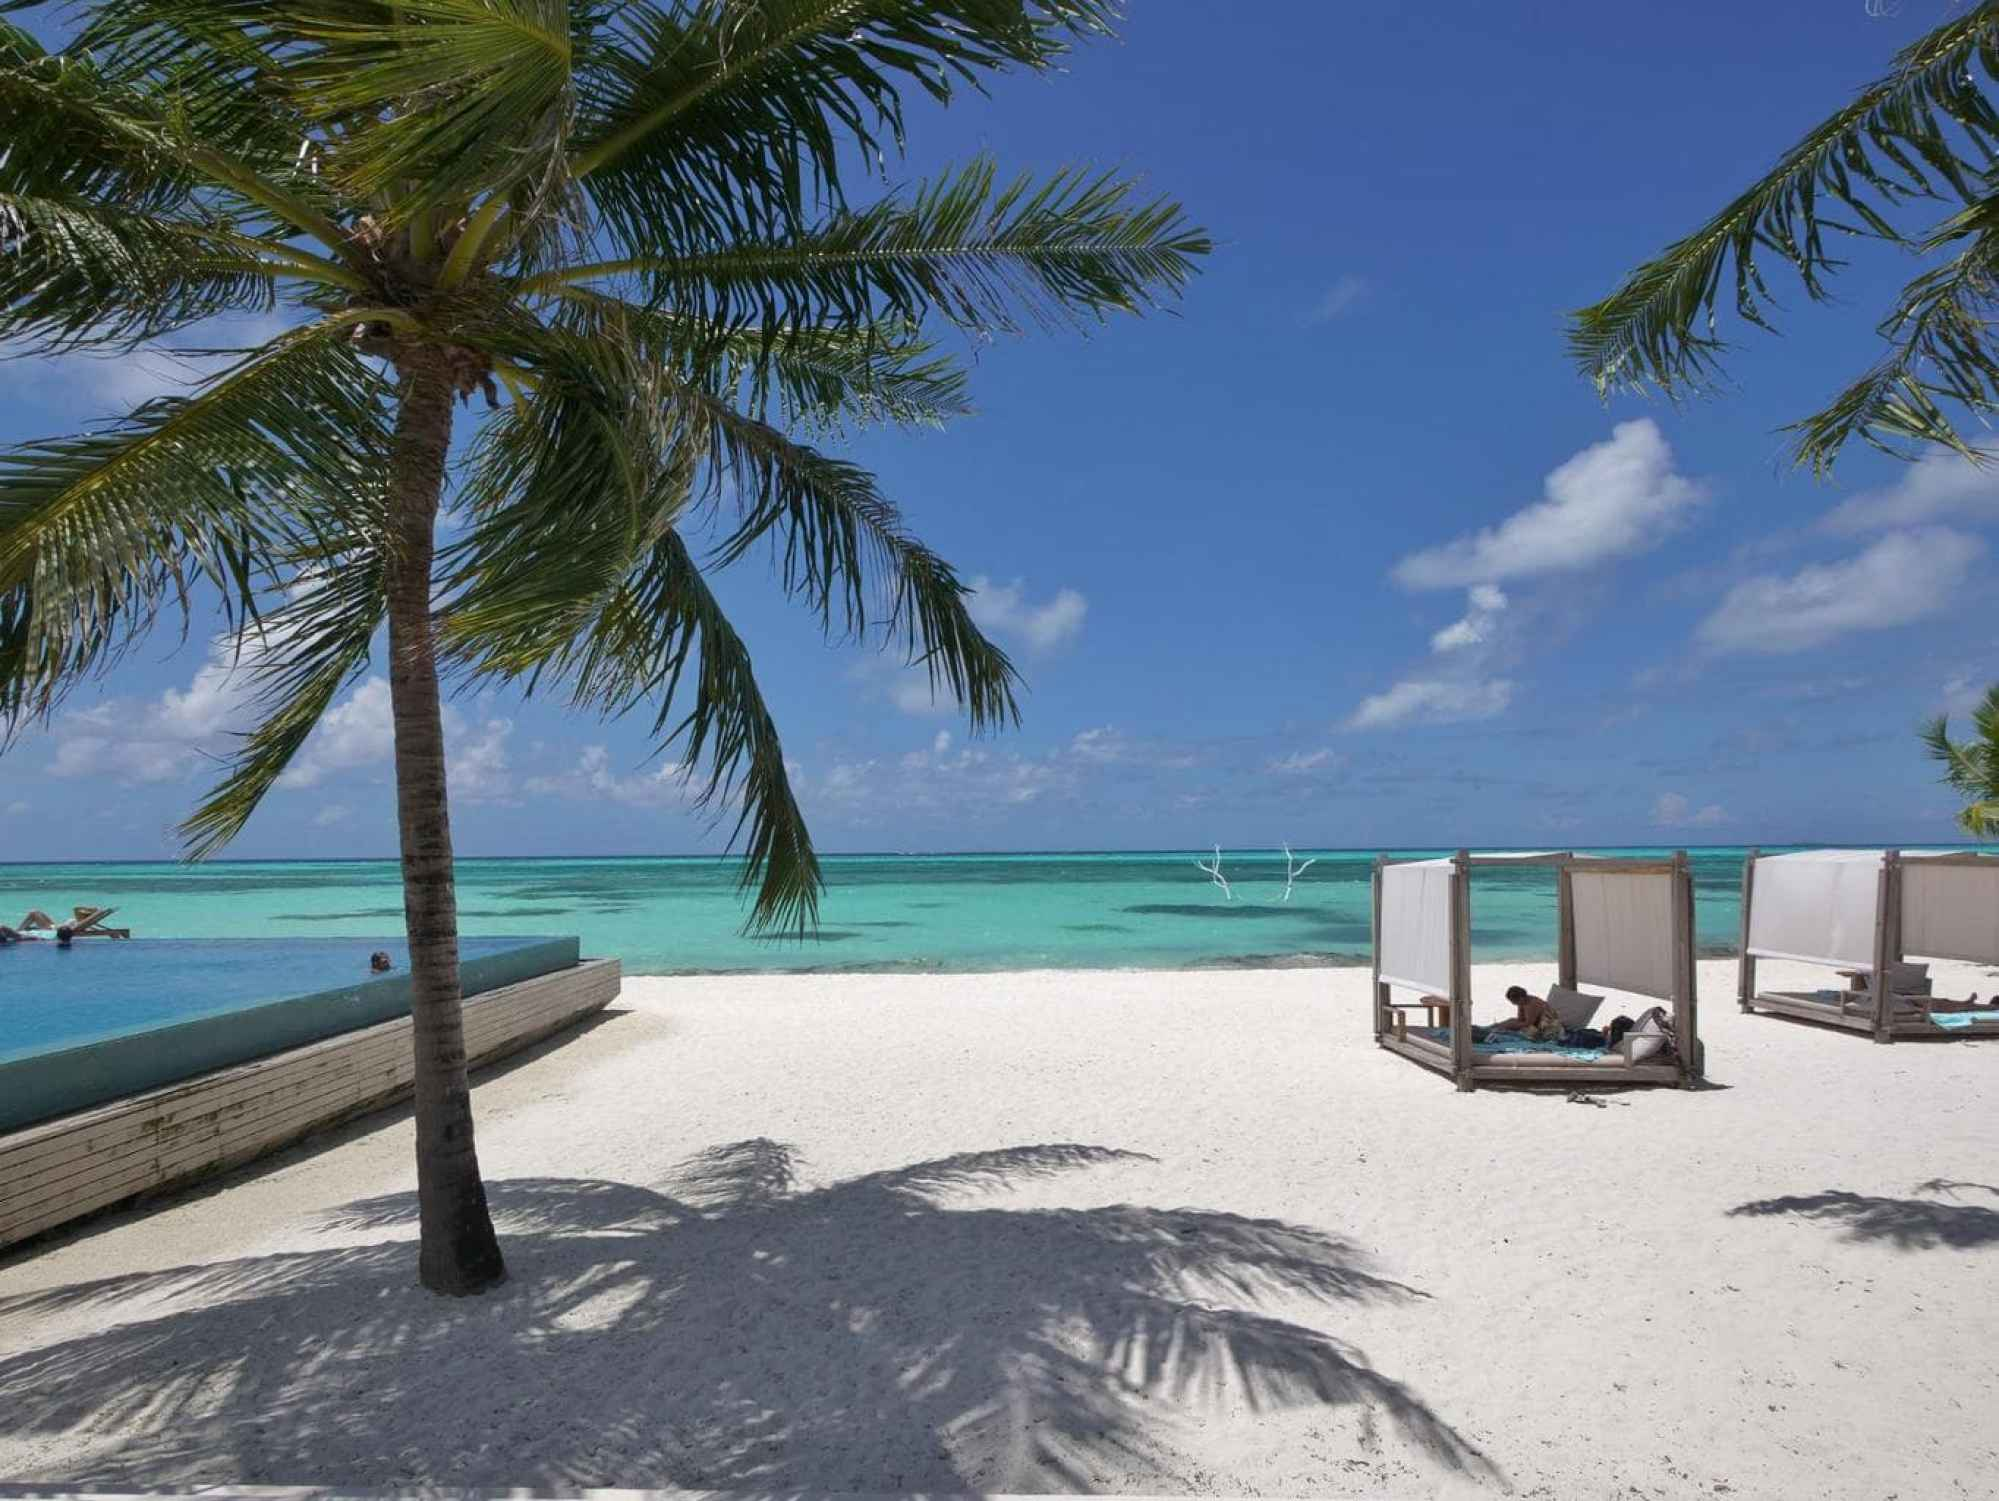 Infinity pool by Senses restaurant at LUX* Maldives